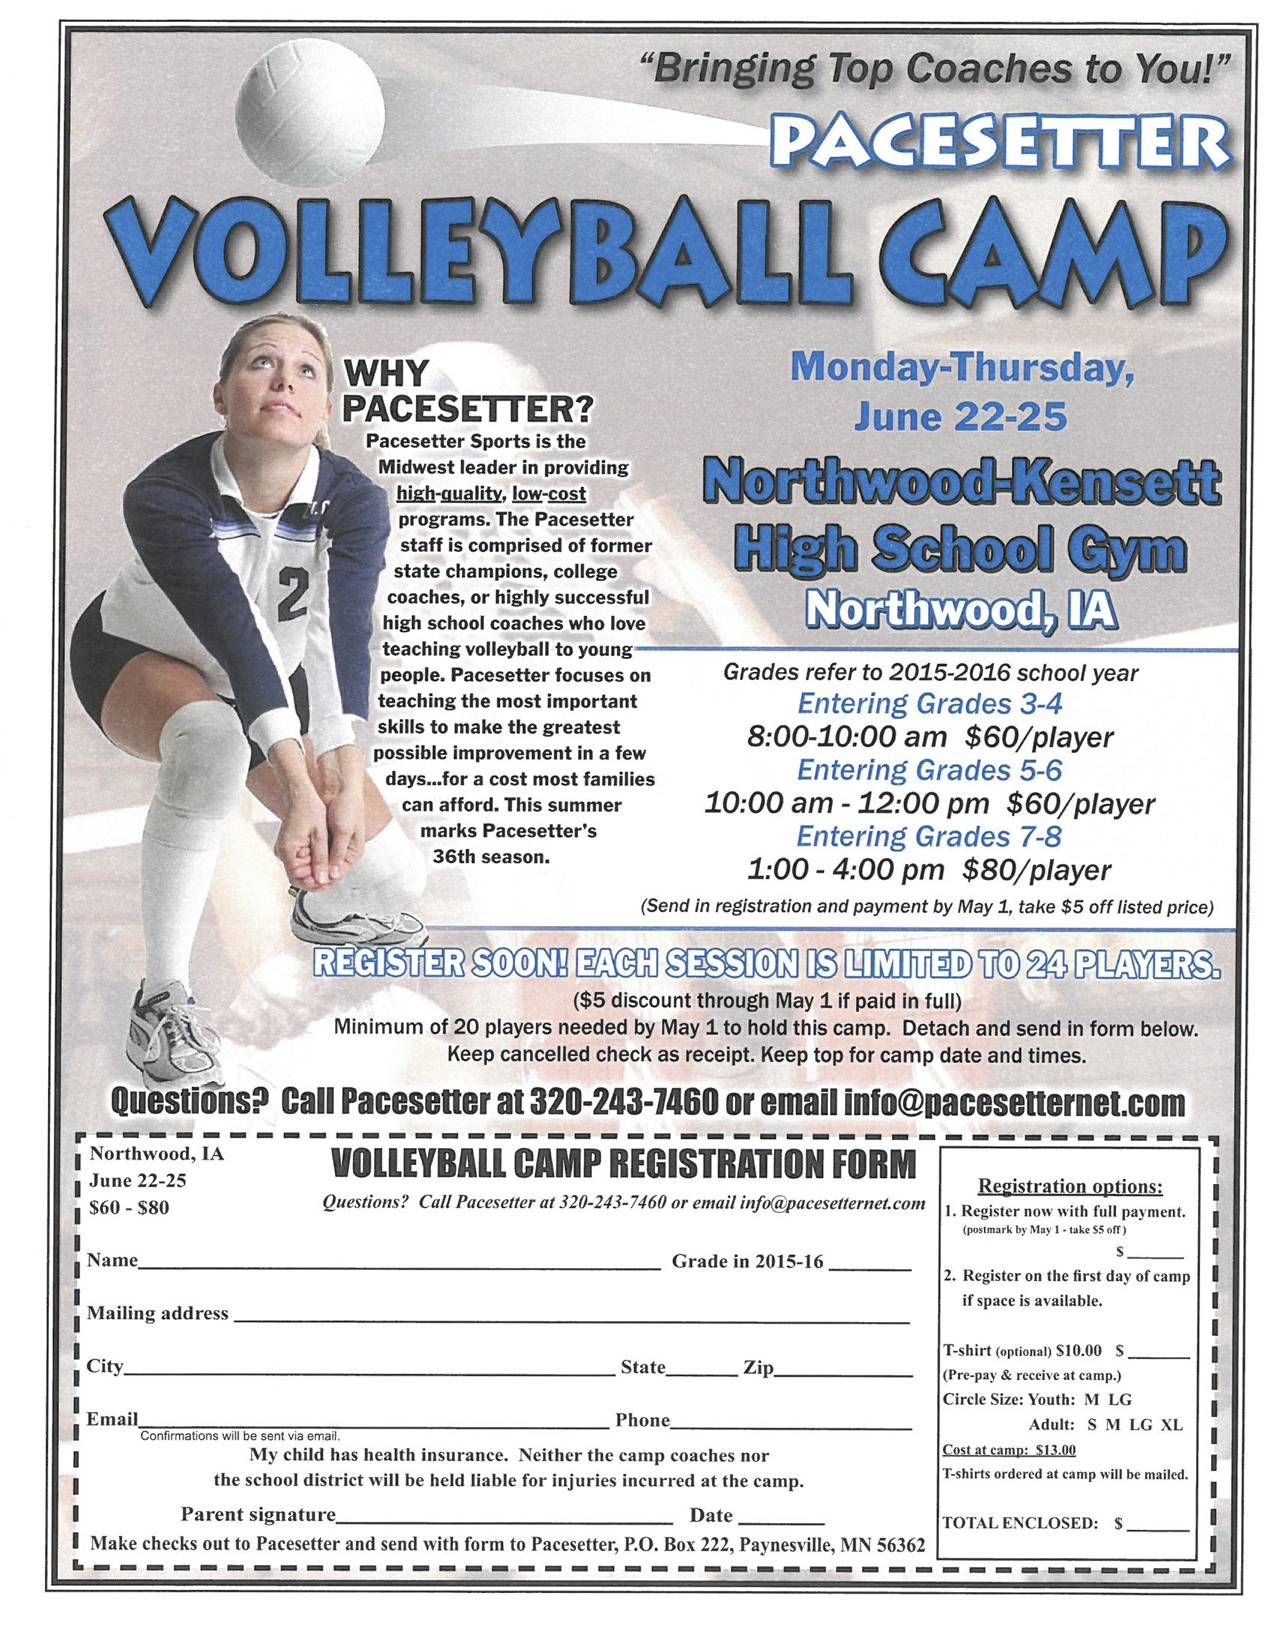 Northwood-Kensett - Pacesetter Volleyball Camp Form